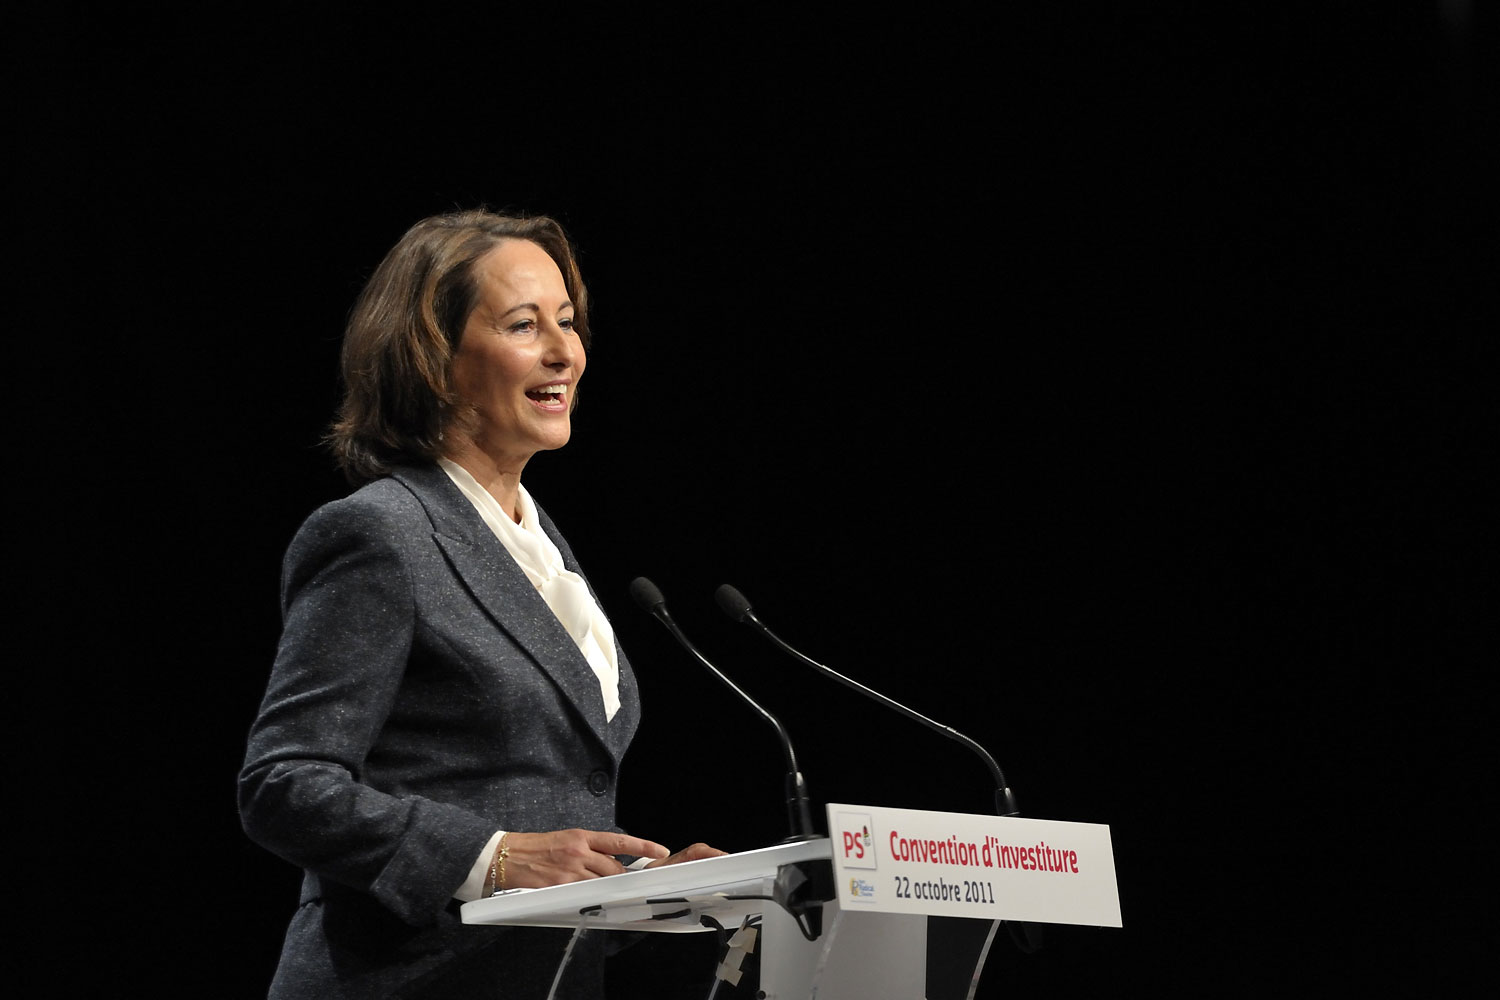 Segolene Royal gives a speech in Paris in 2011.